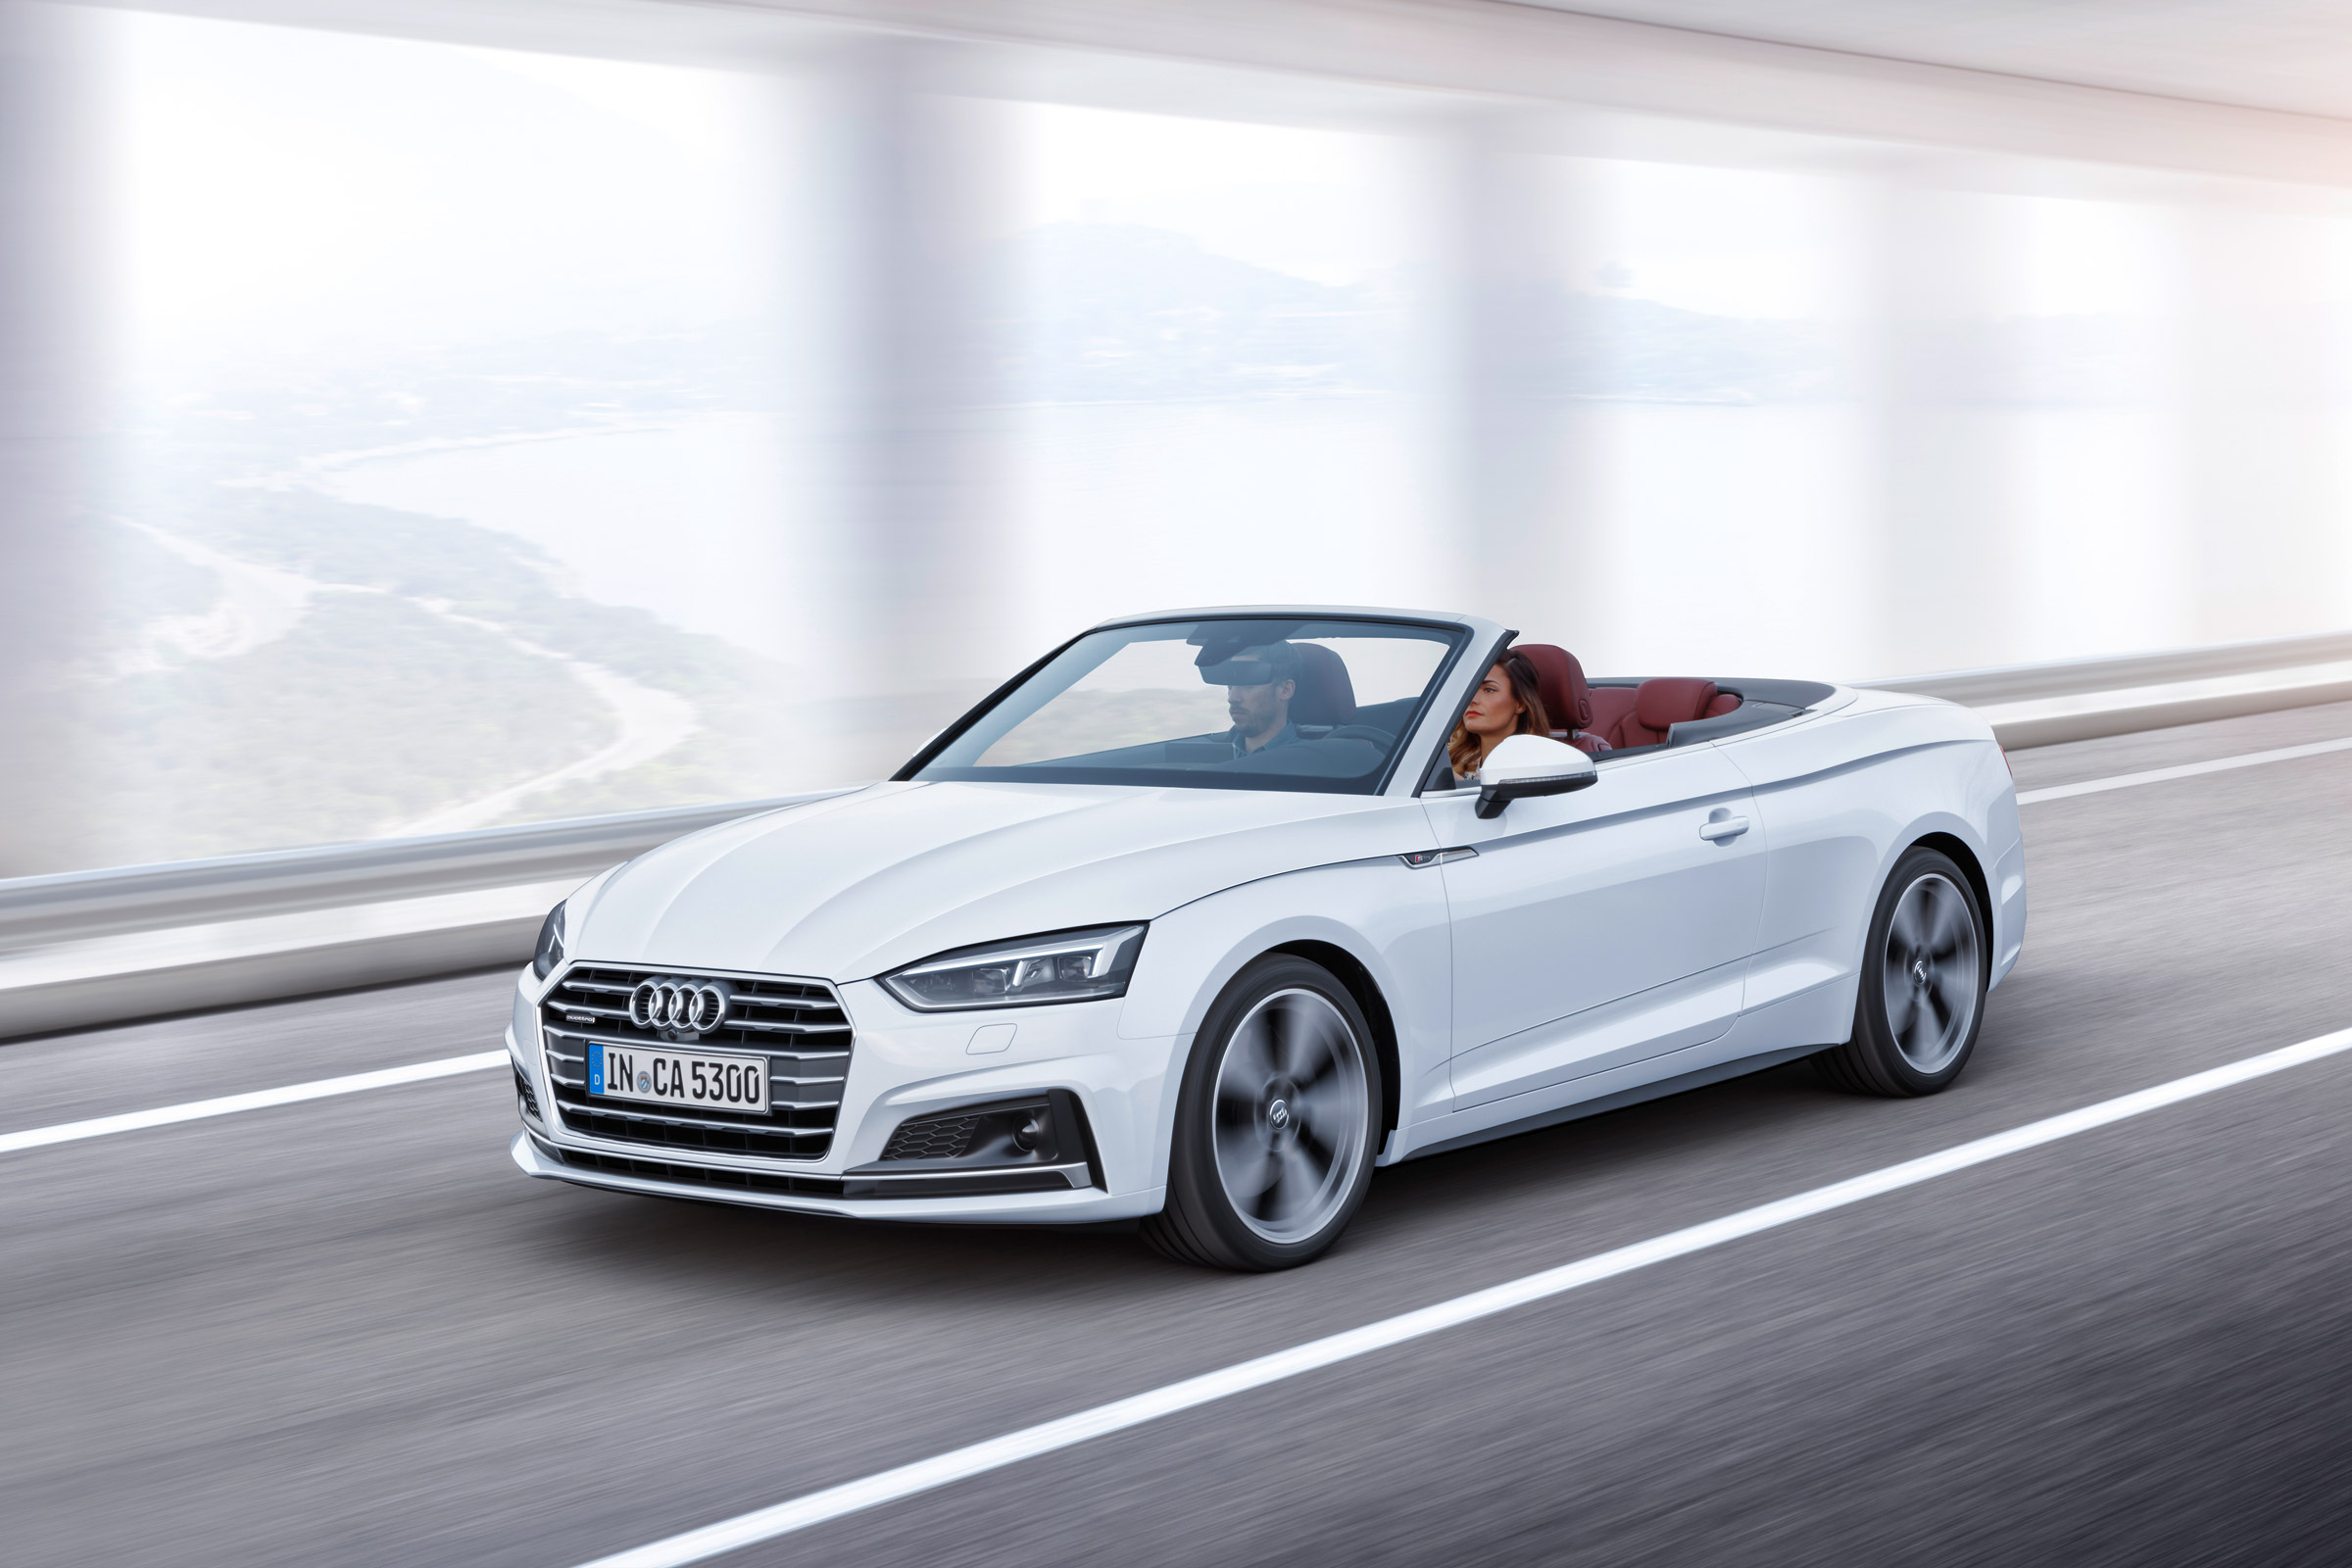 New 2017 Audi A5 Cabriolet Prices And Specs Revealed Auto Express